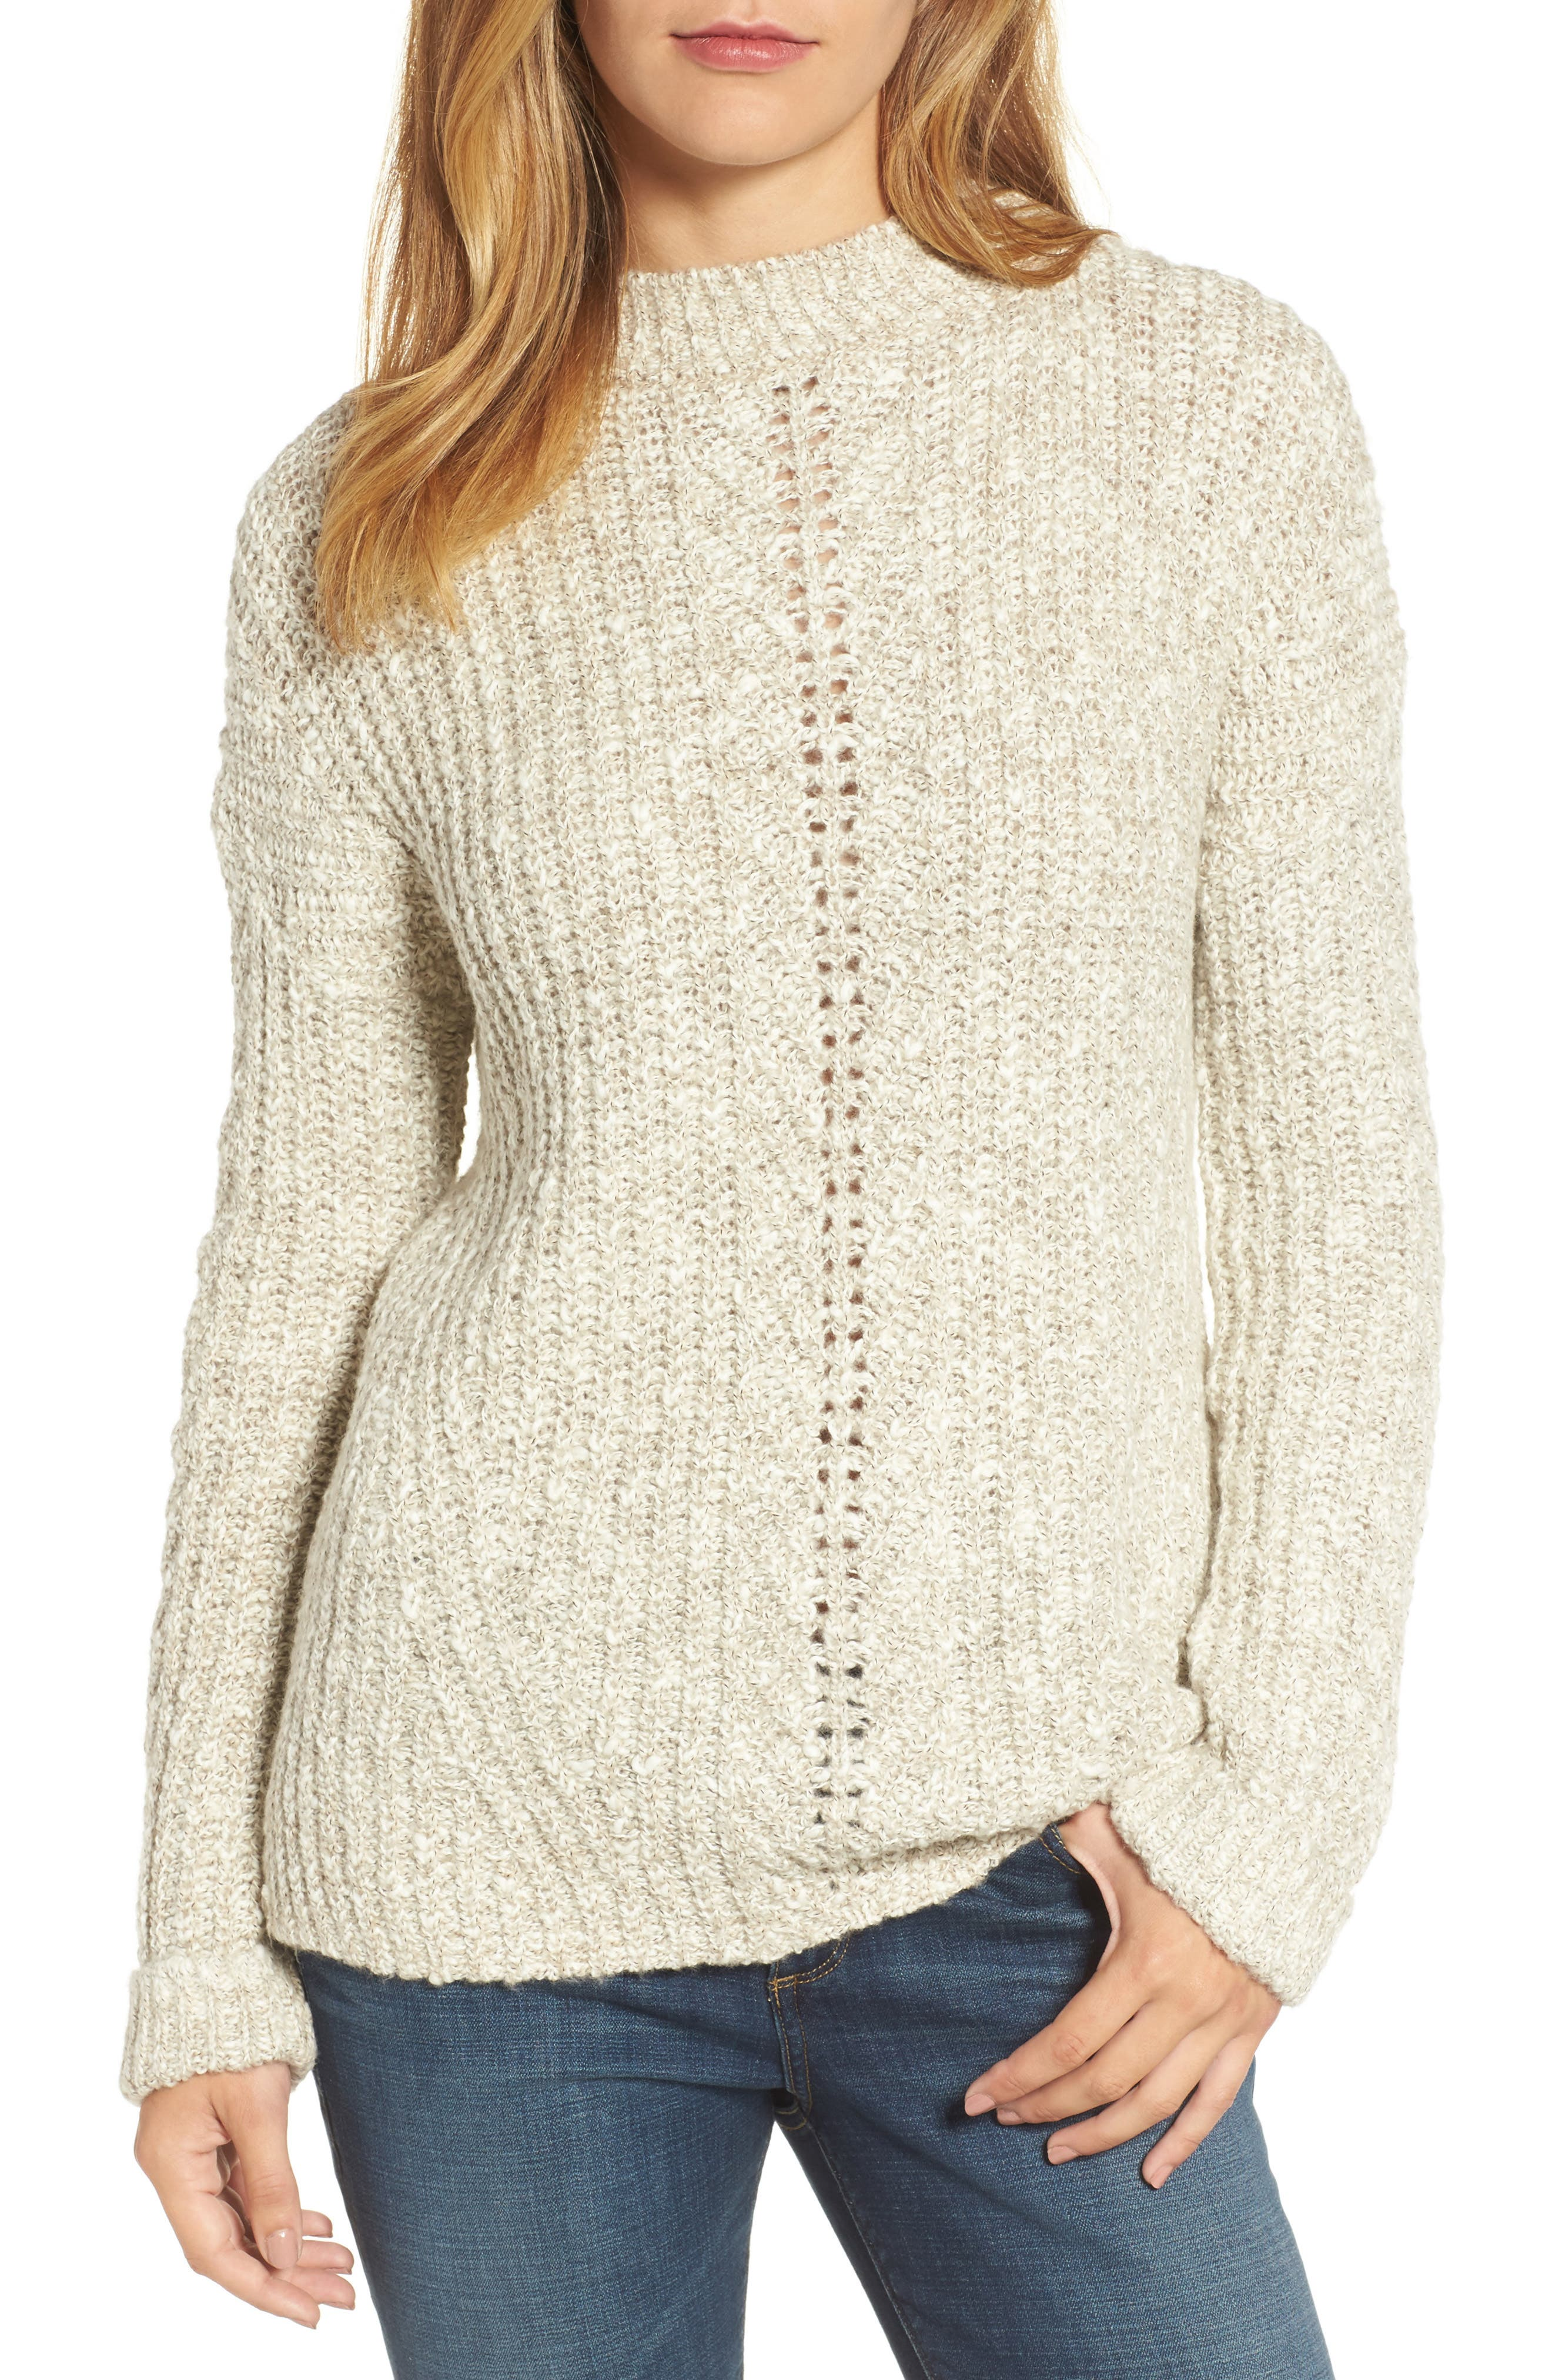 Alternate Image 1 Selected - Lucky Brand Open Stitch Sweater